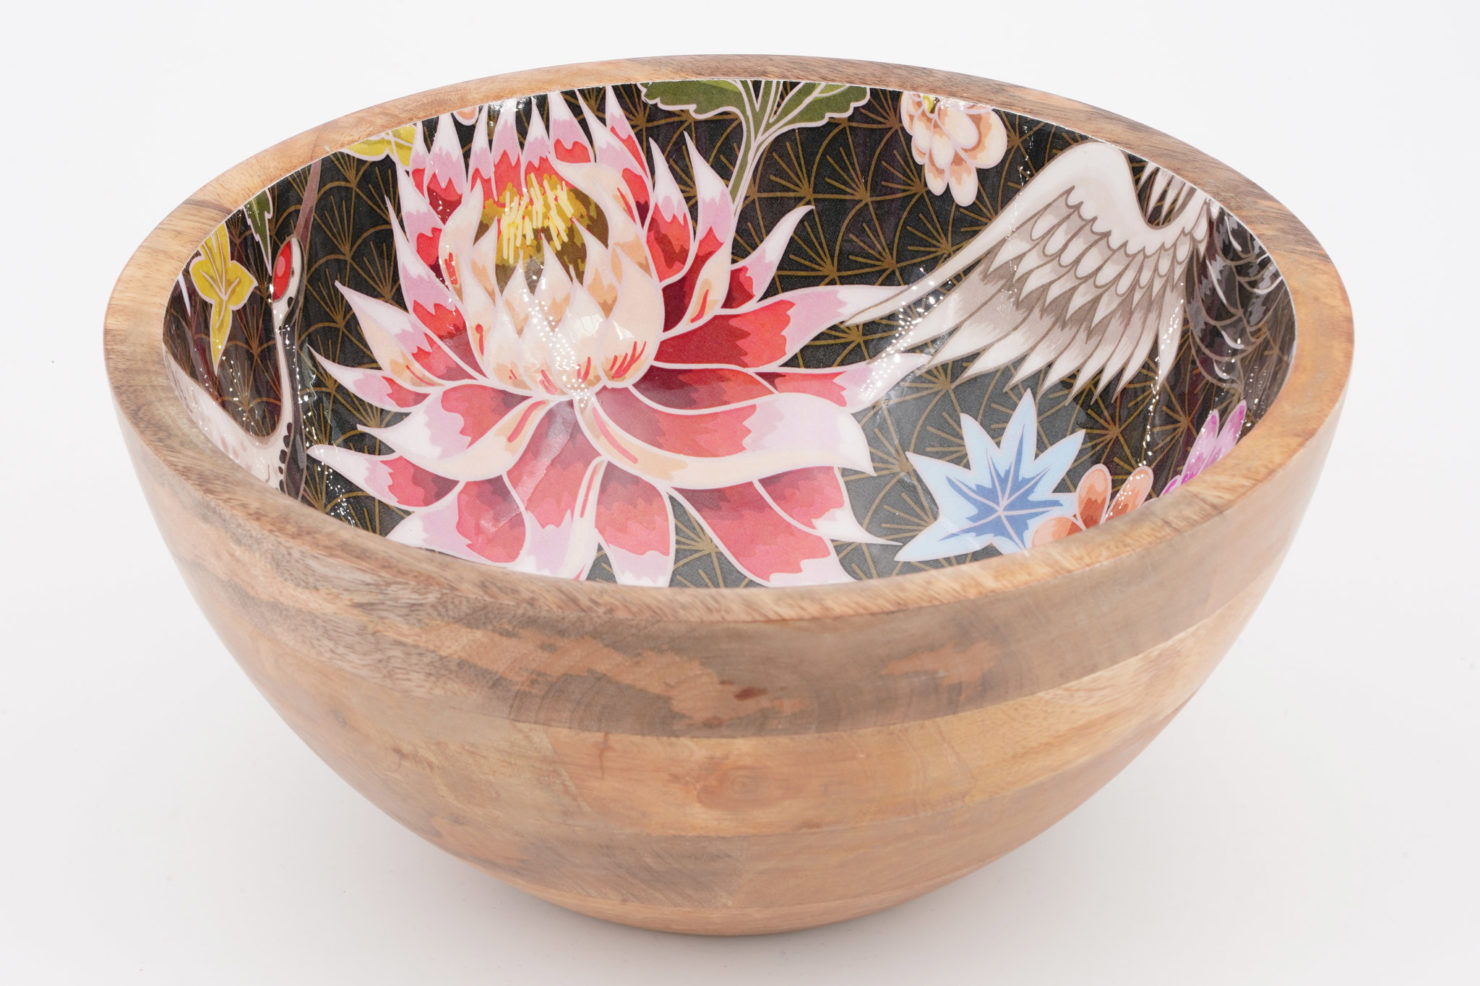 BOWL LOTUS/CRANE MANGO WOOD 25 CM - BY ROOM